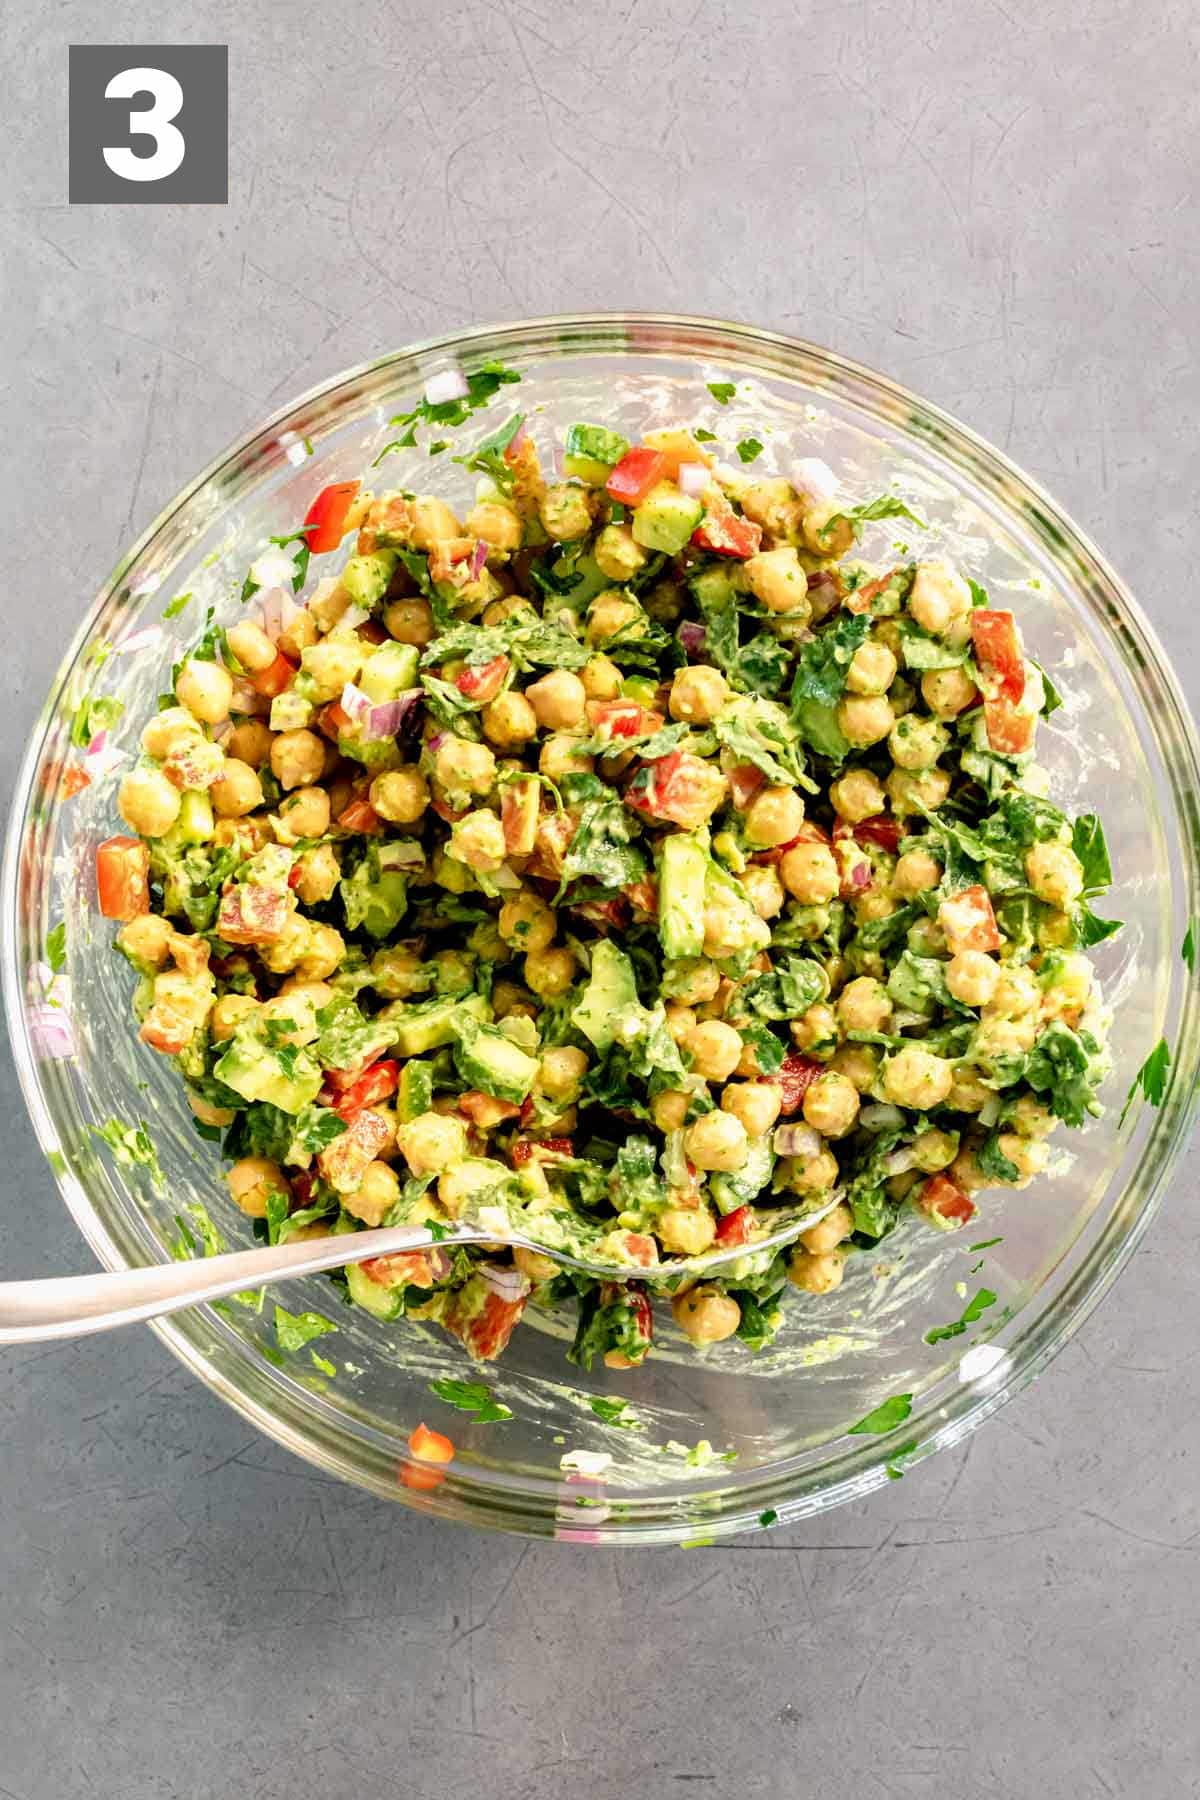 dressing and chickpea mixture once it is mixed together